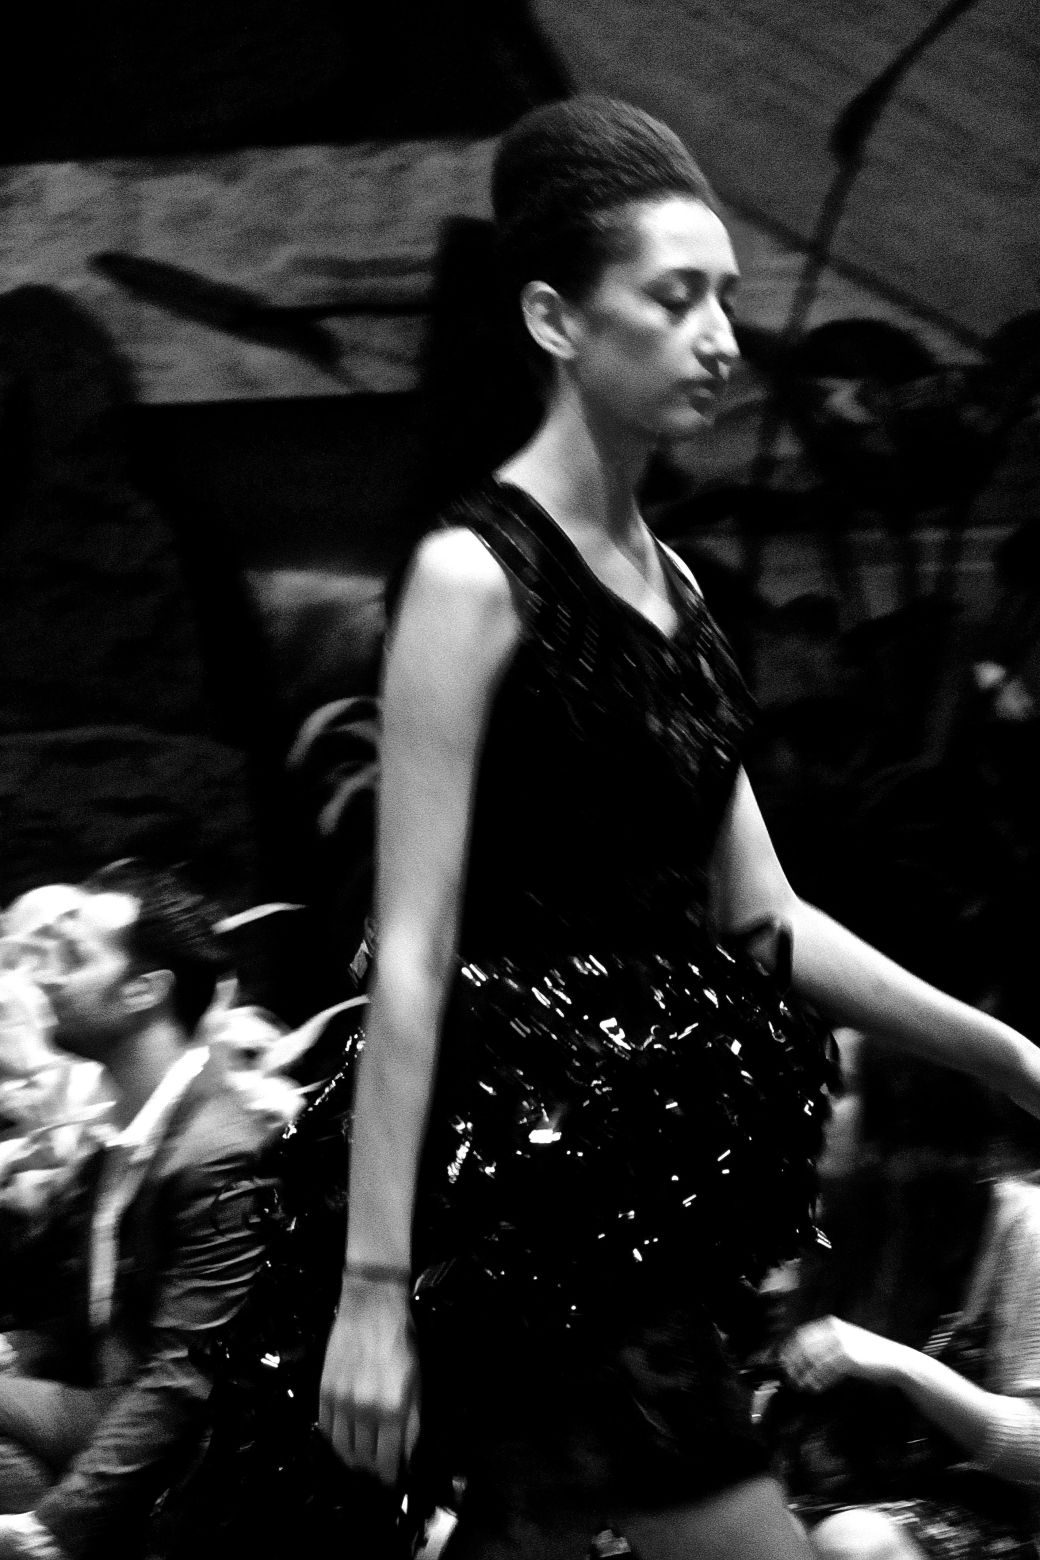 boston fashion week october 2 woman in black dress